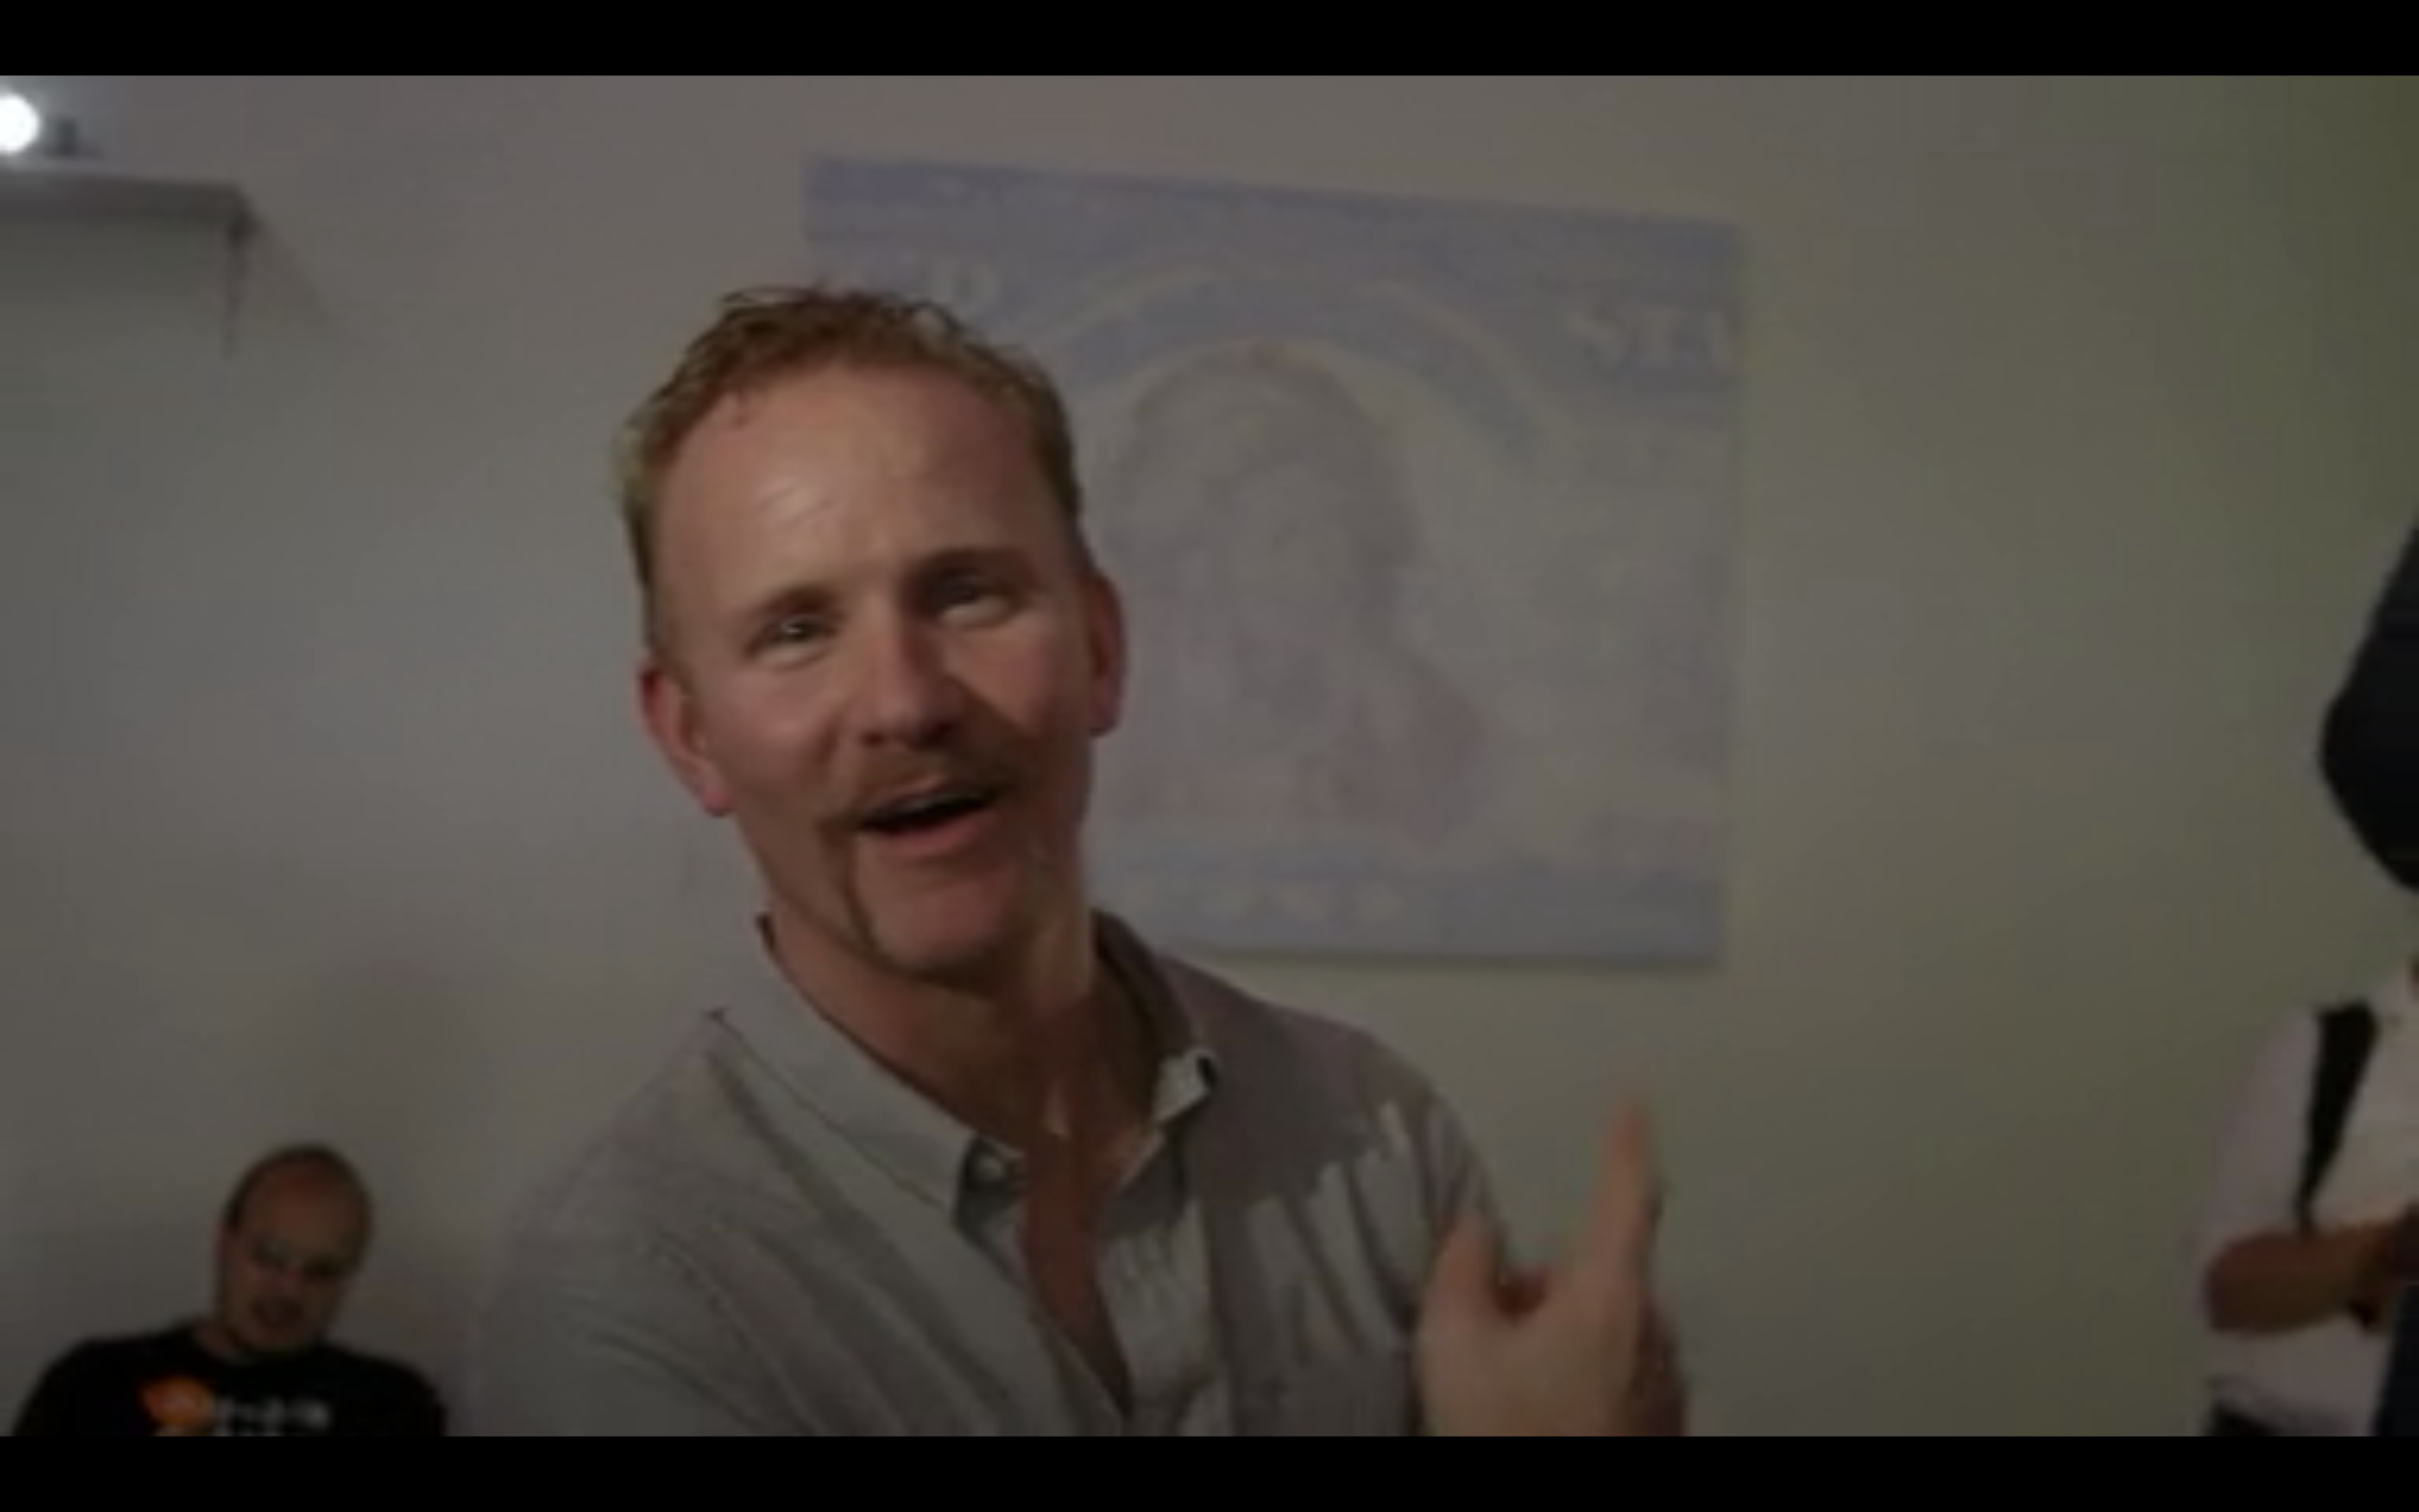 """""""Running Antelope"""" is one of several of Jenna Lash's works in the Monetary Series on display while Morgan Spurlock visits Manhattan's Bitcoin Center."""